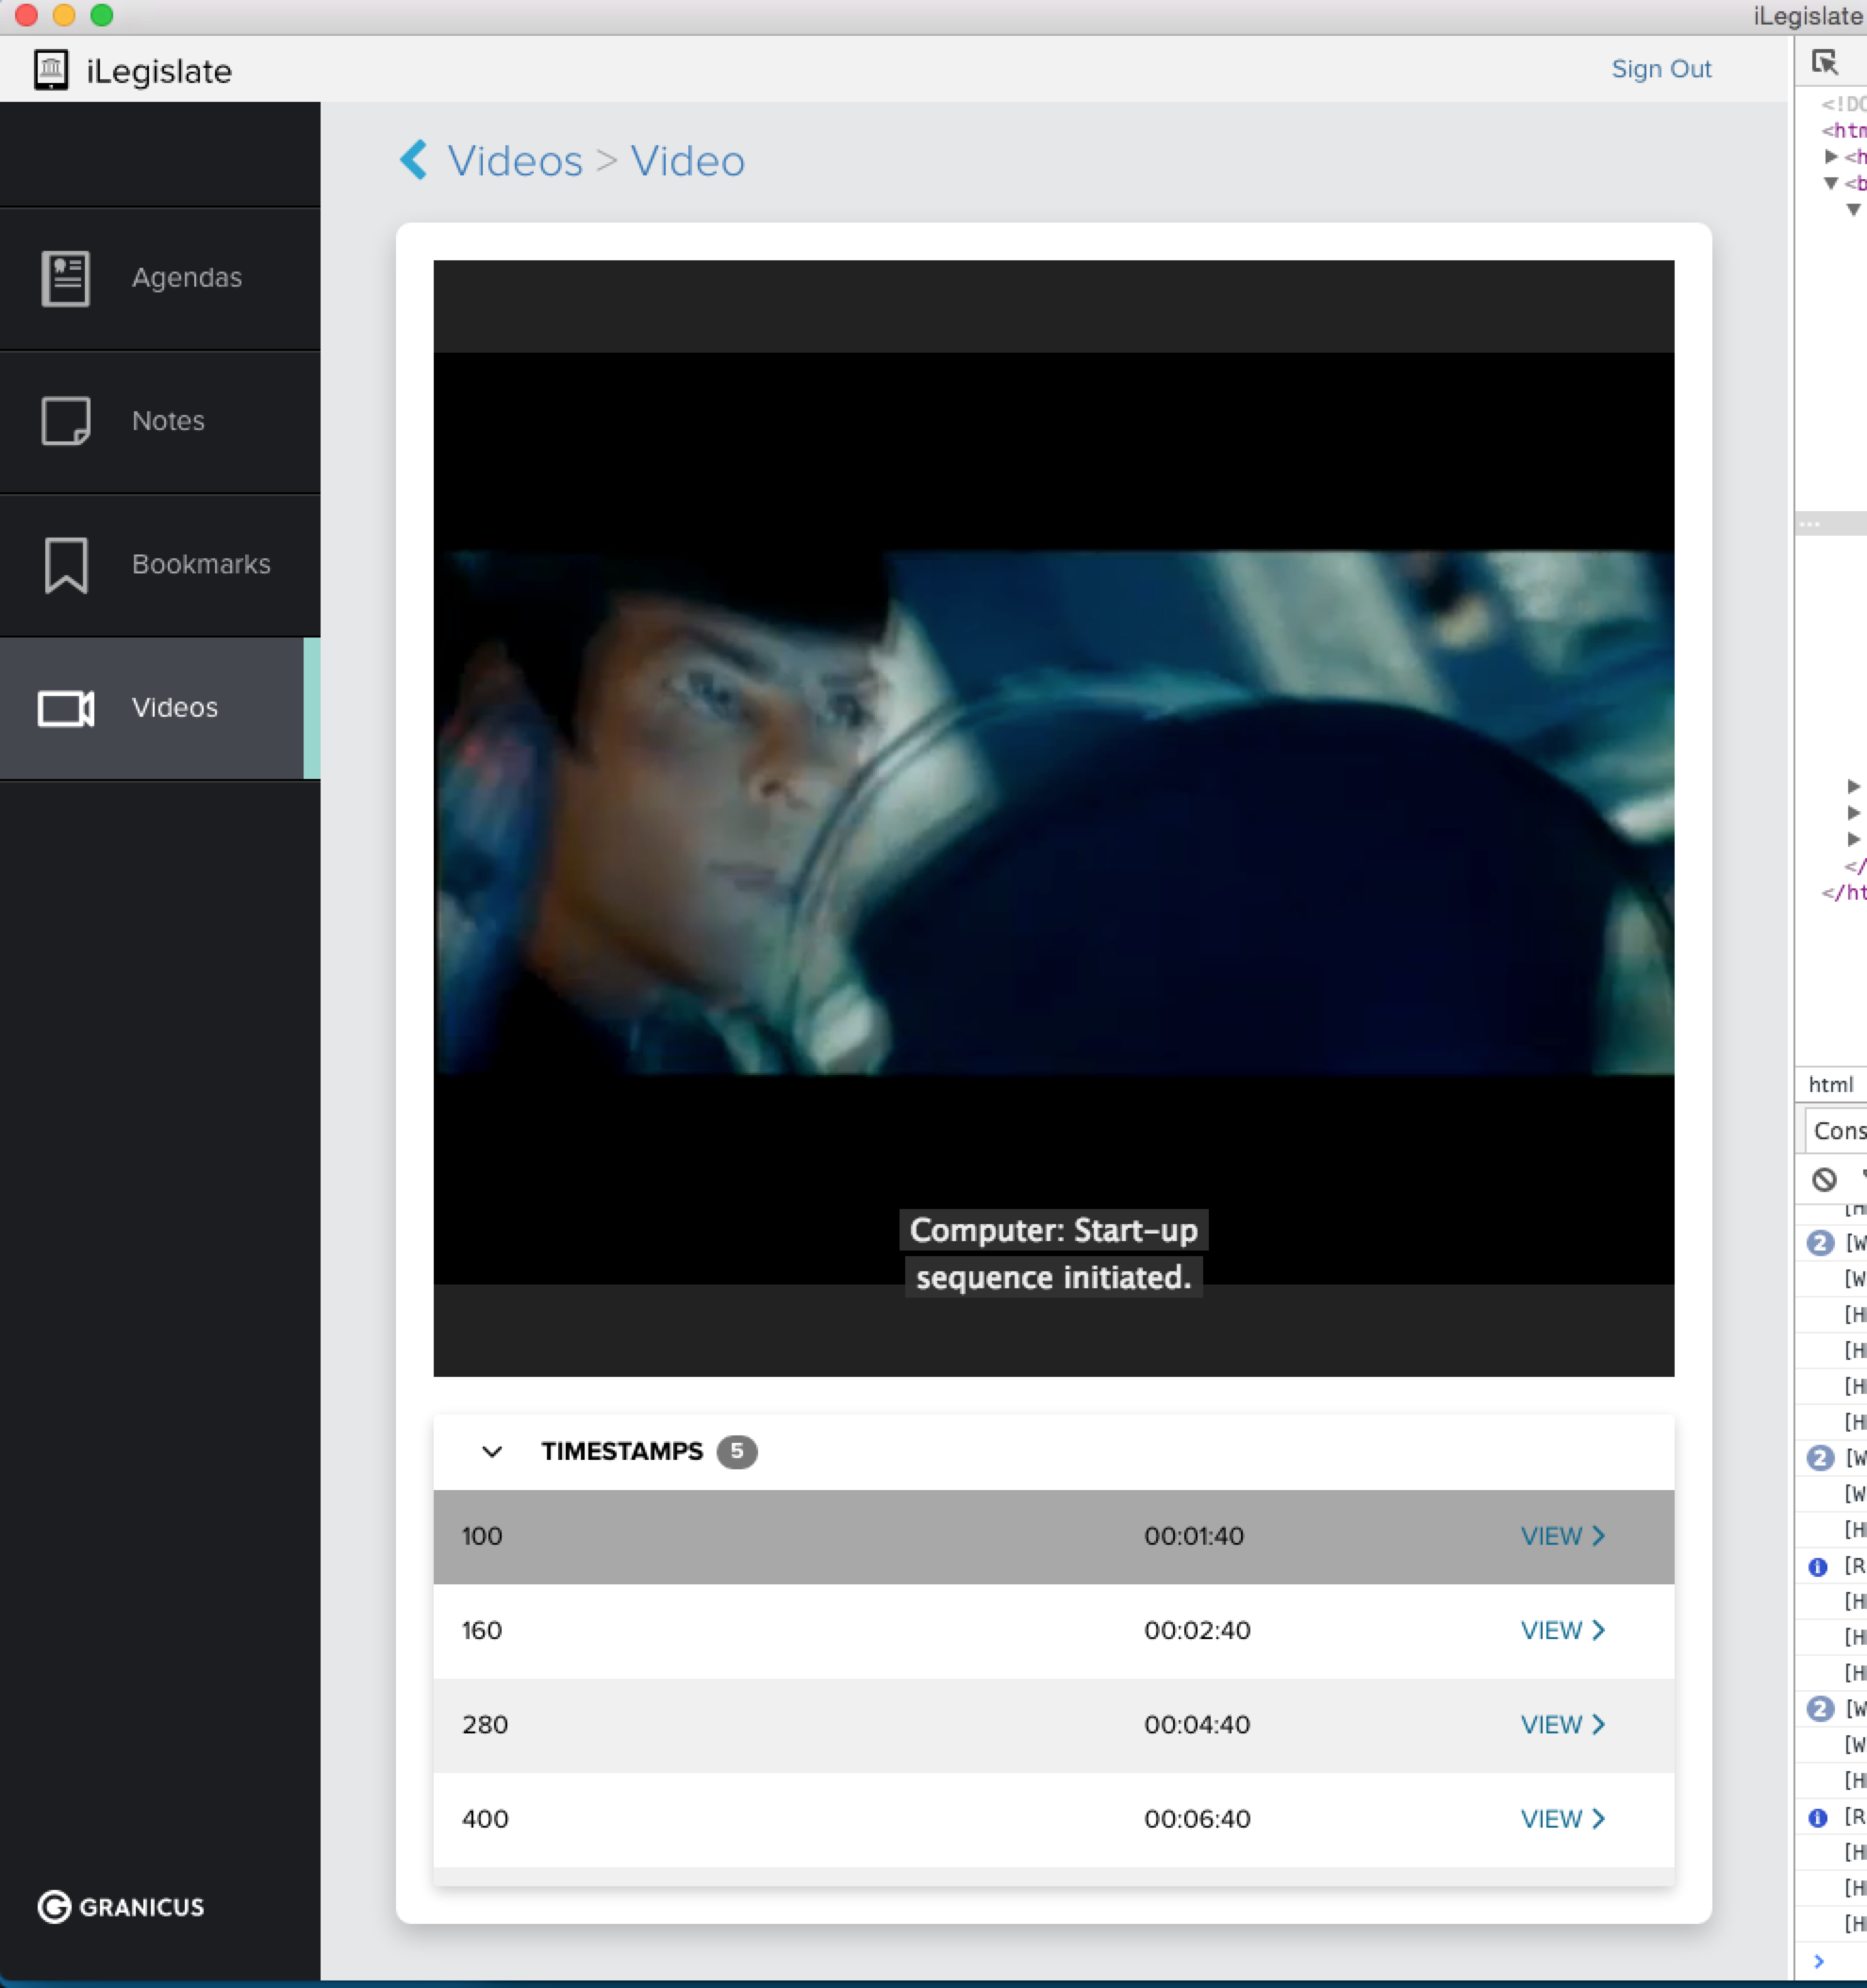 - We use Star Trek to test our video streaming. Highly logical!